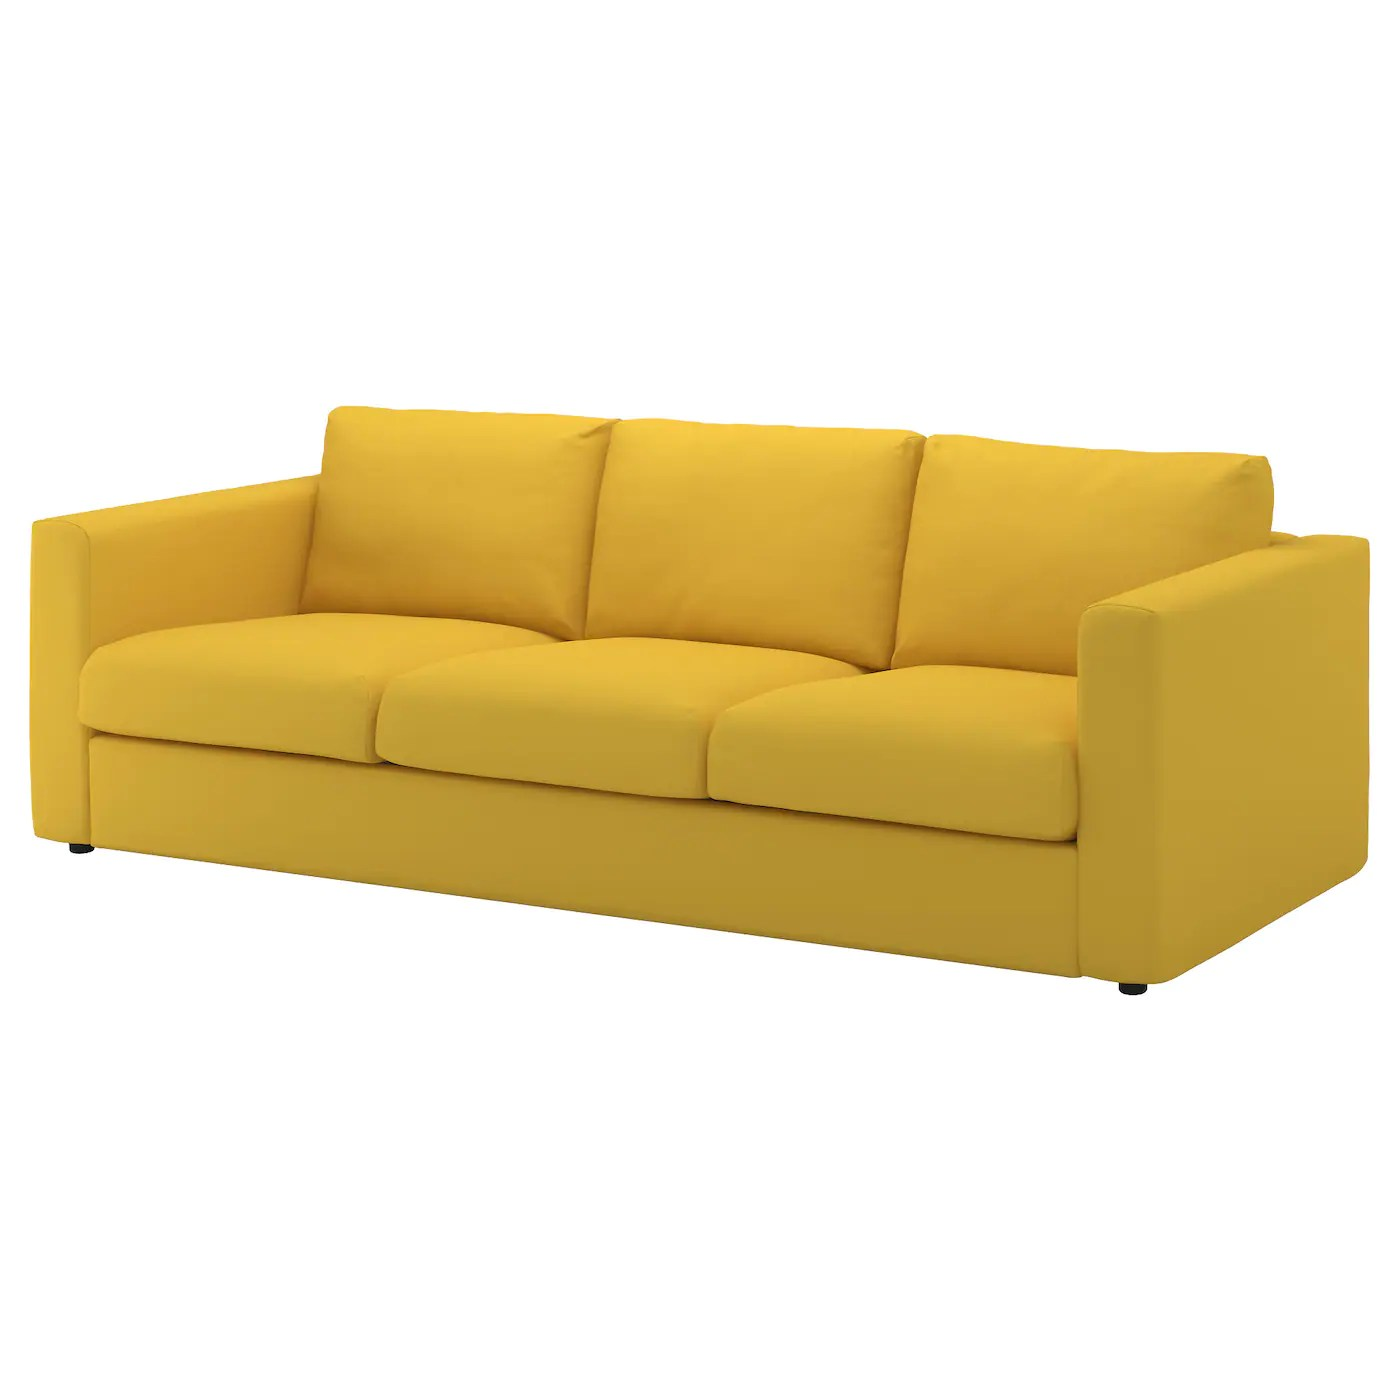 yellow sofa bed ikea navy blue sectional vimle 3 seat with chaise longue